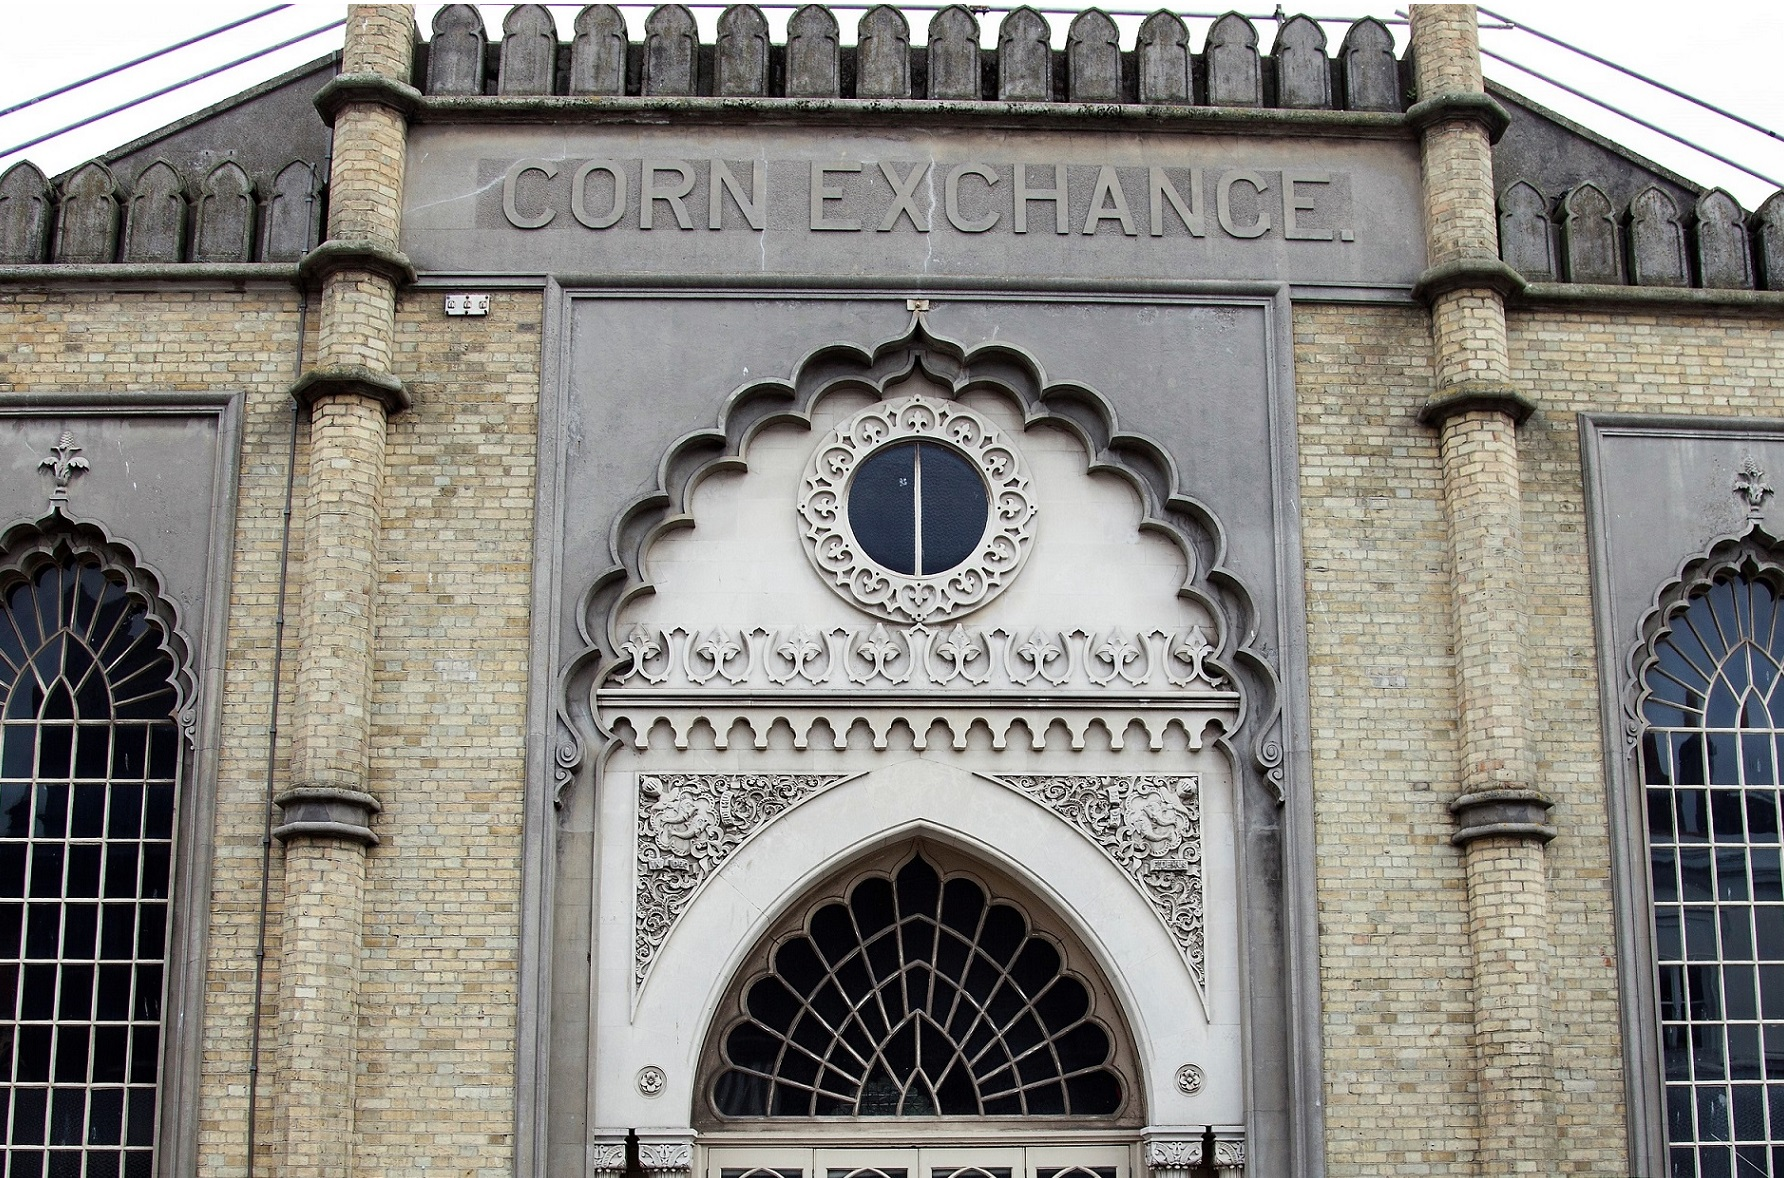 Brighton Corn Exchange